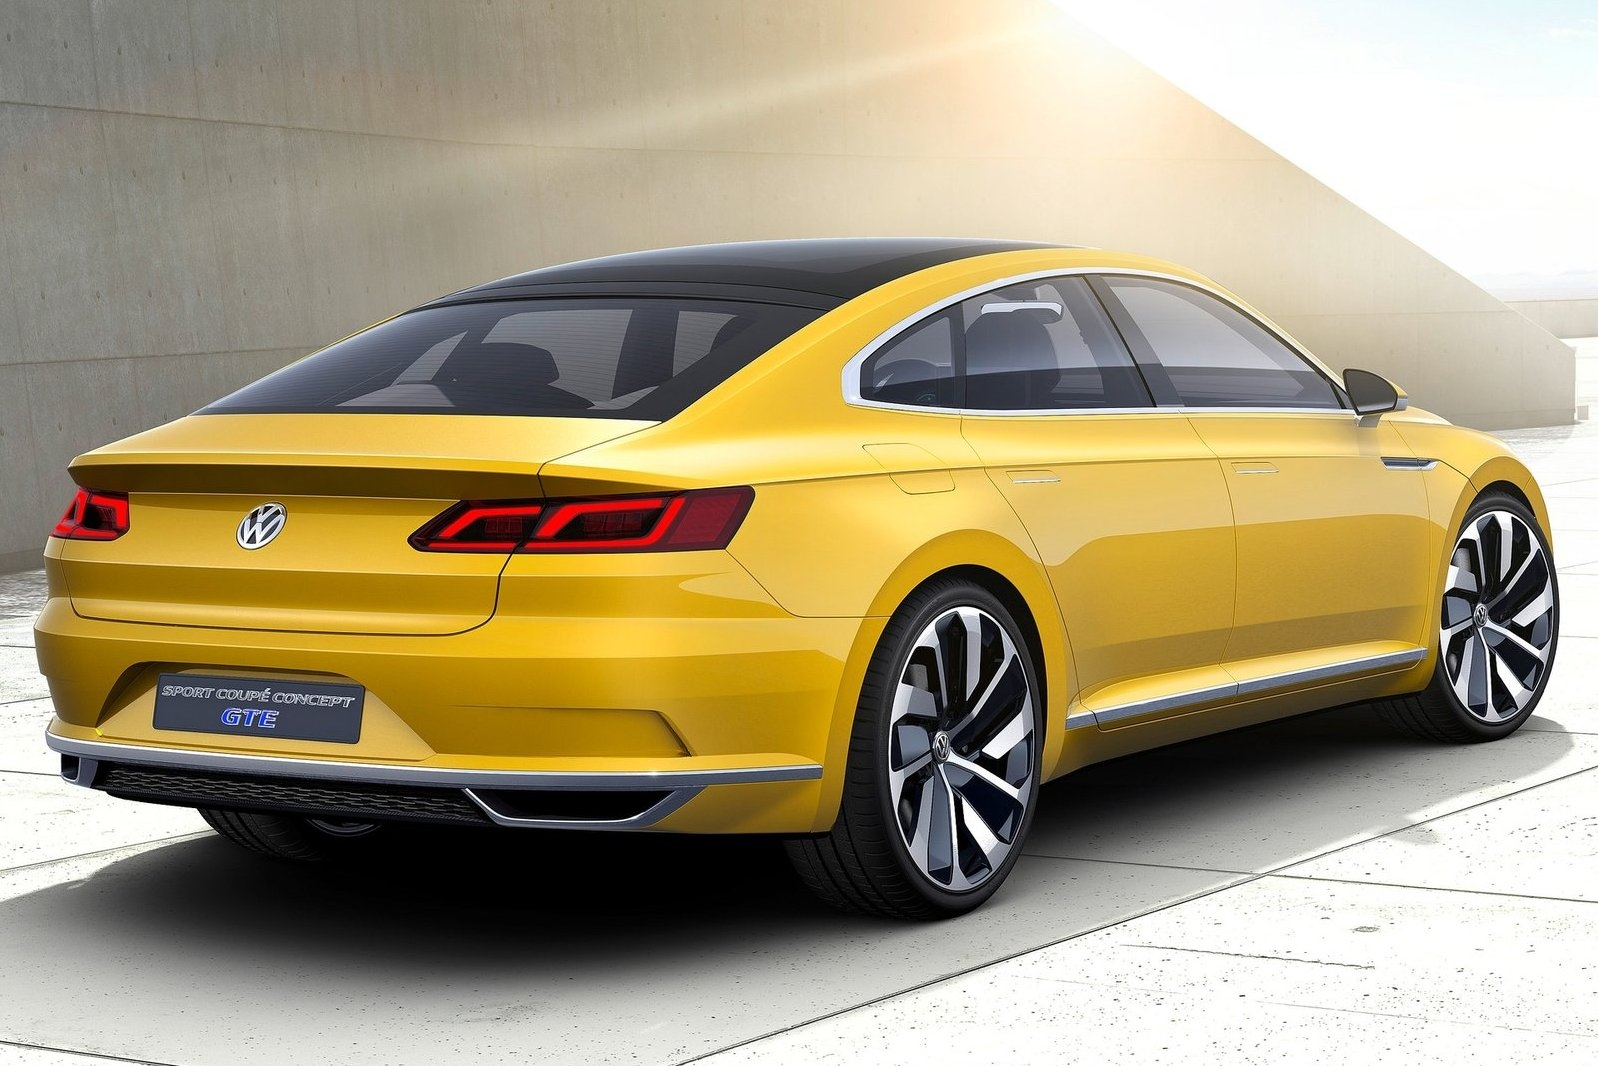 2019 Volkswagen Sport Coupe GTE Concept photo - 1